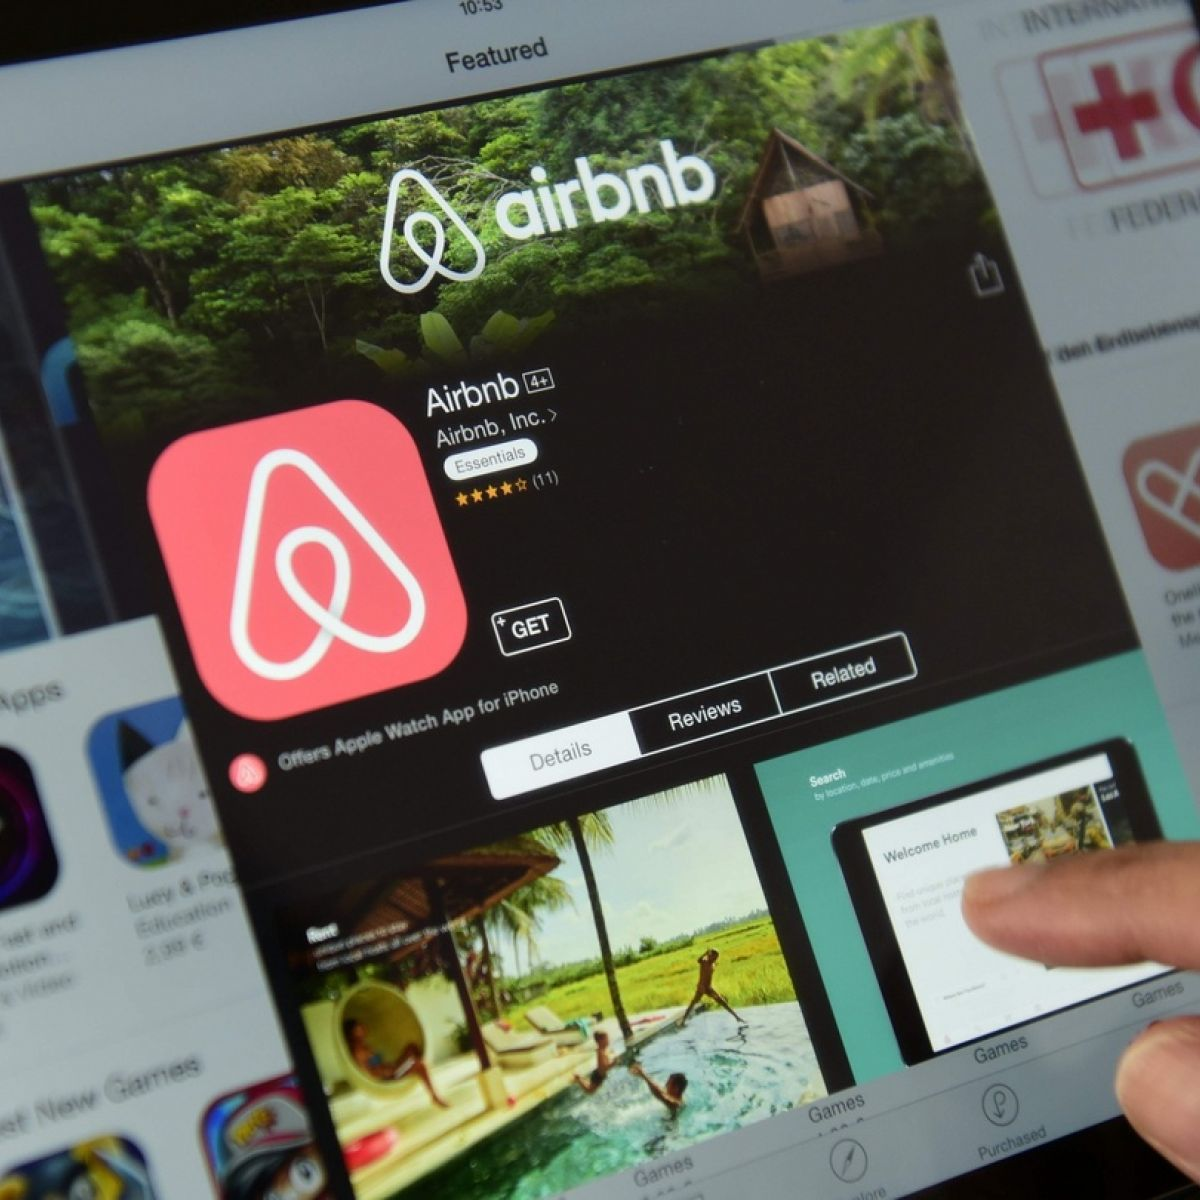 Airbnb ban for Dublin apartment upheld by board